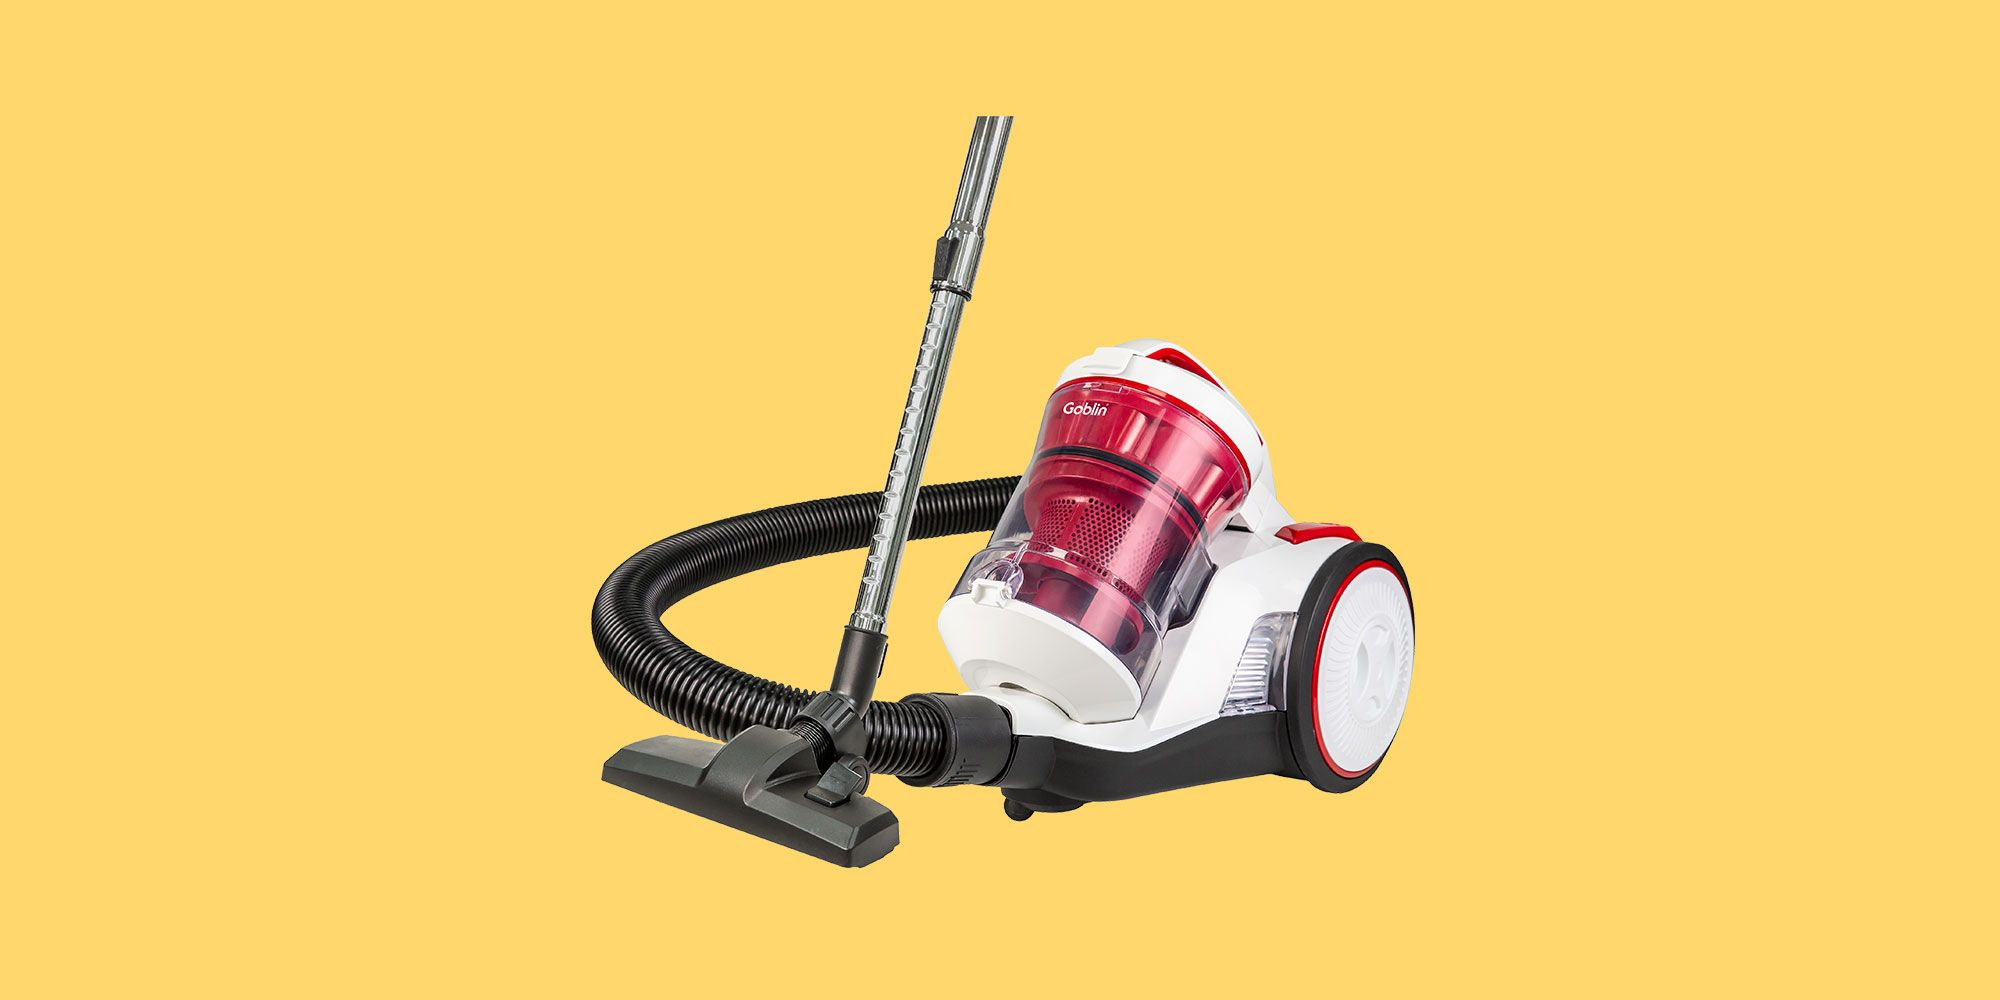 Goblin GCV304W 19 Cylinder Vacuum Review